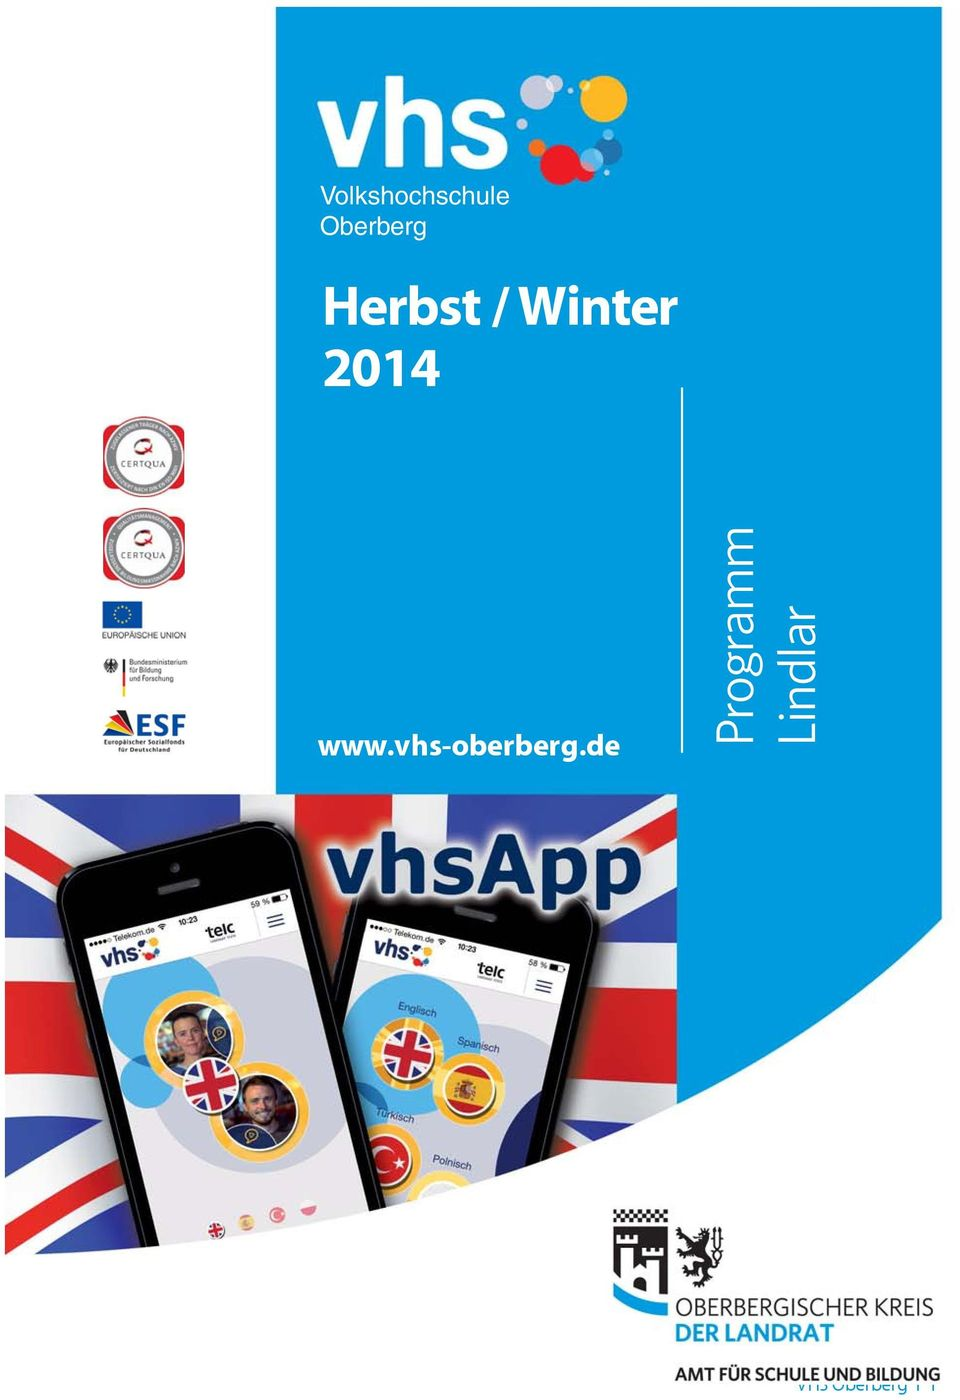 Herbst / Winter 2014 www.